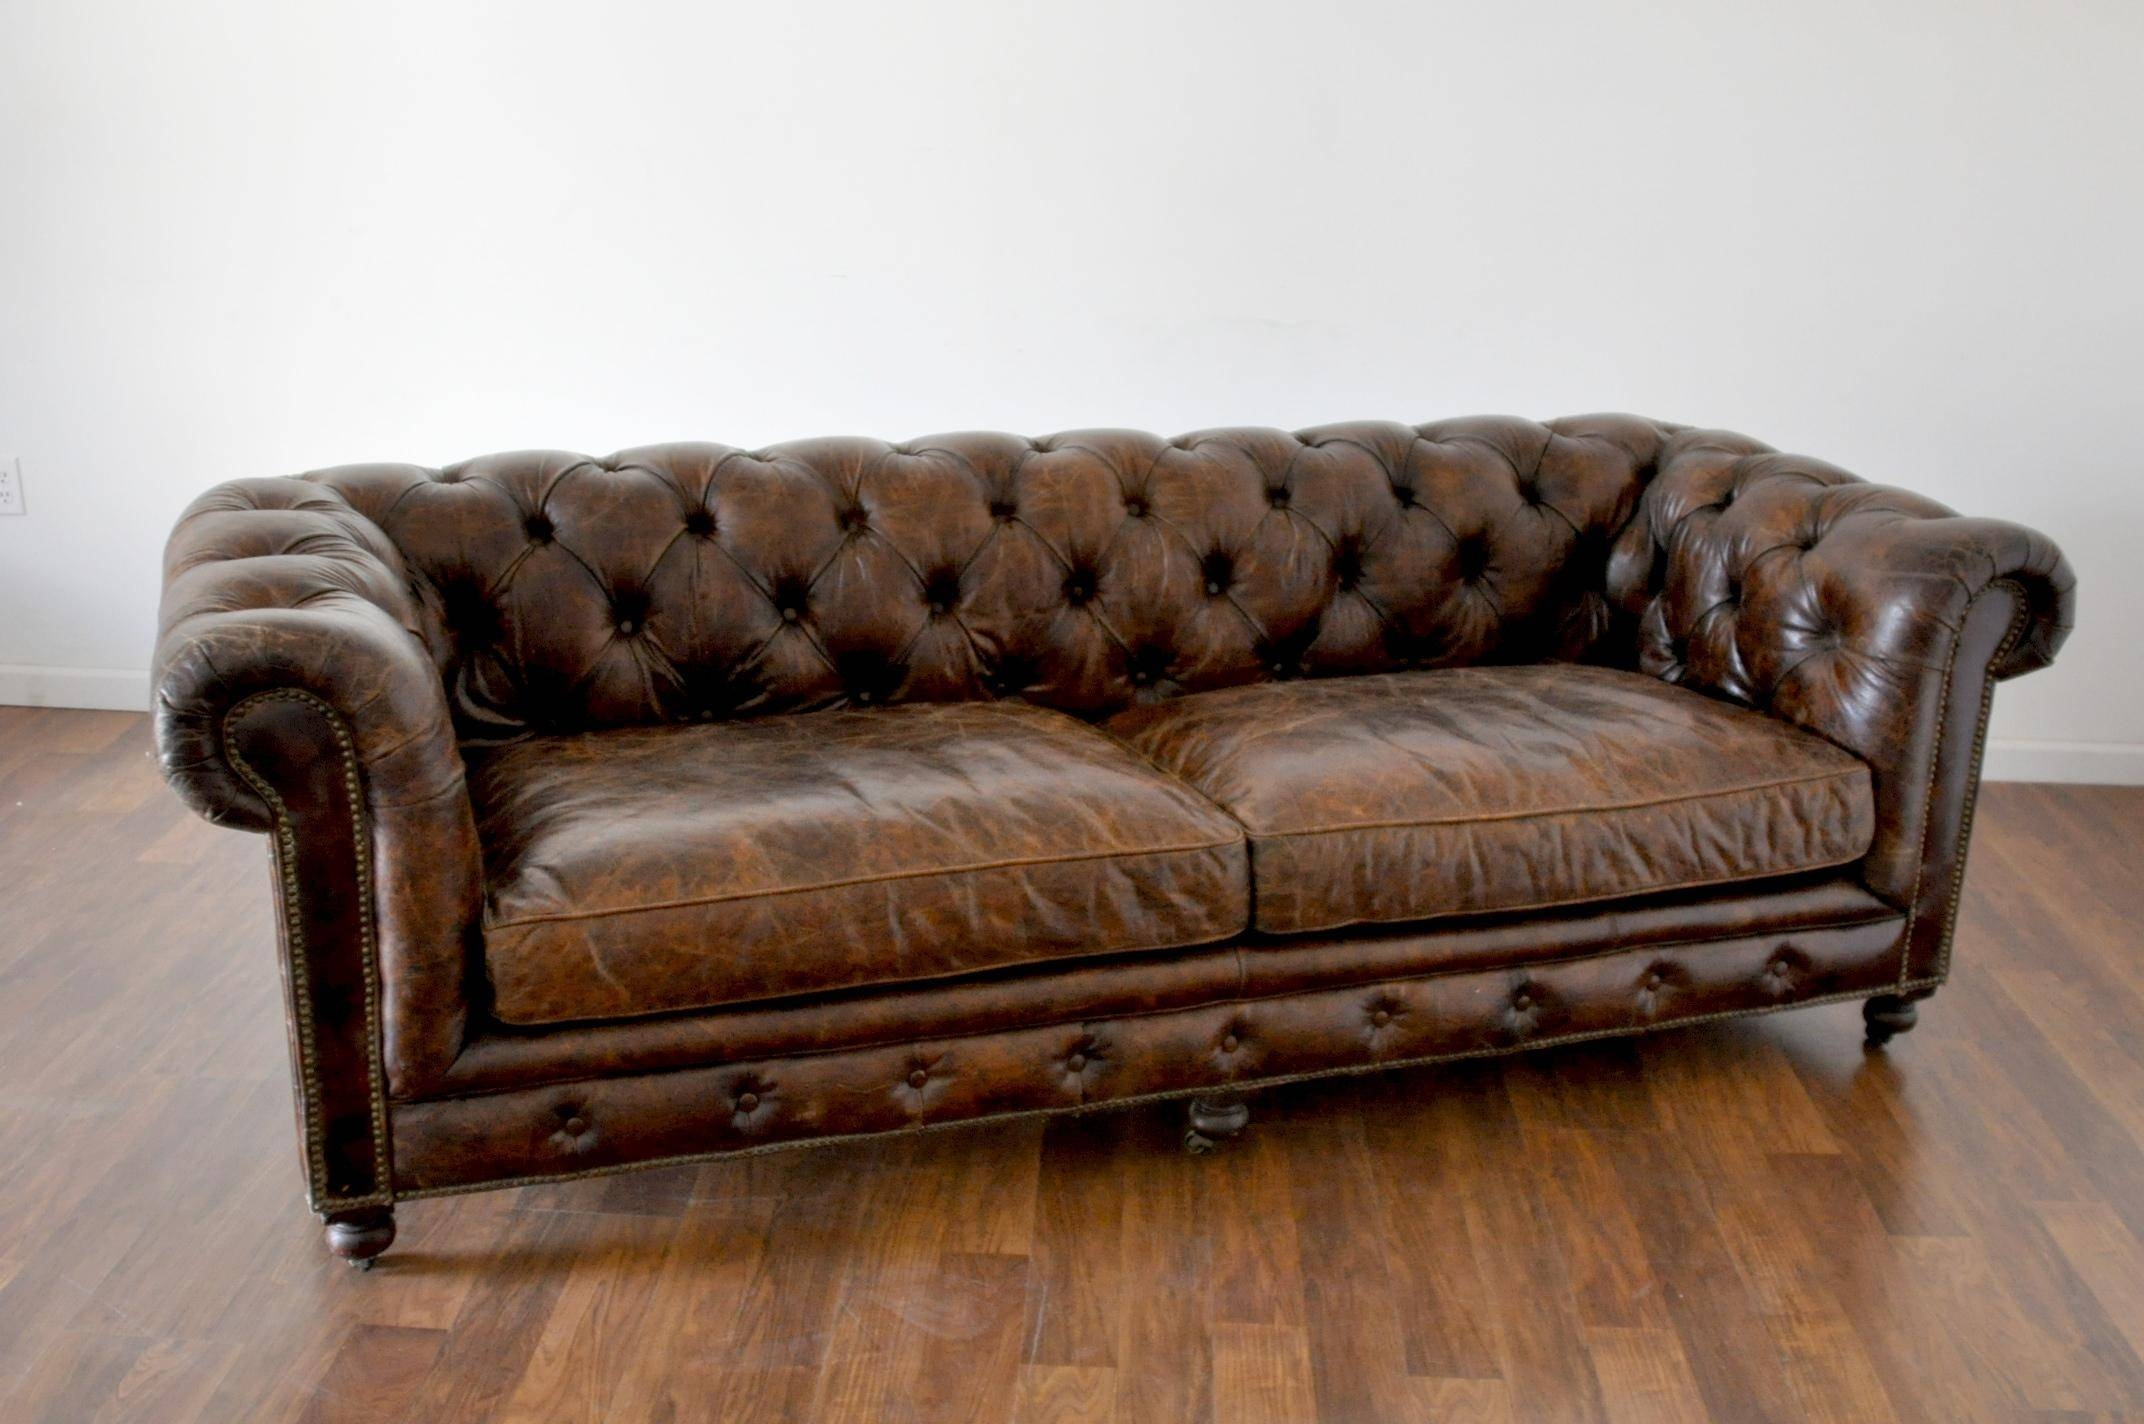 20 Top Brown Tufted Sofas | Sofa Ideas intended for Brown Tufted Sofas (Image 1 of 15)